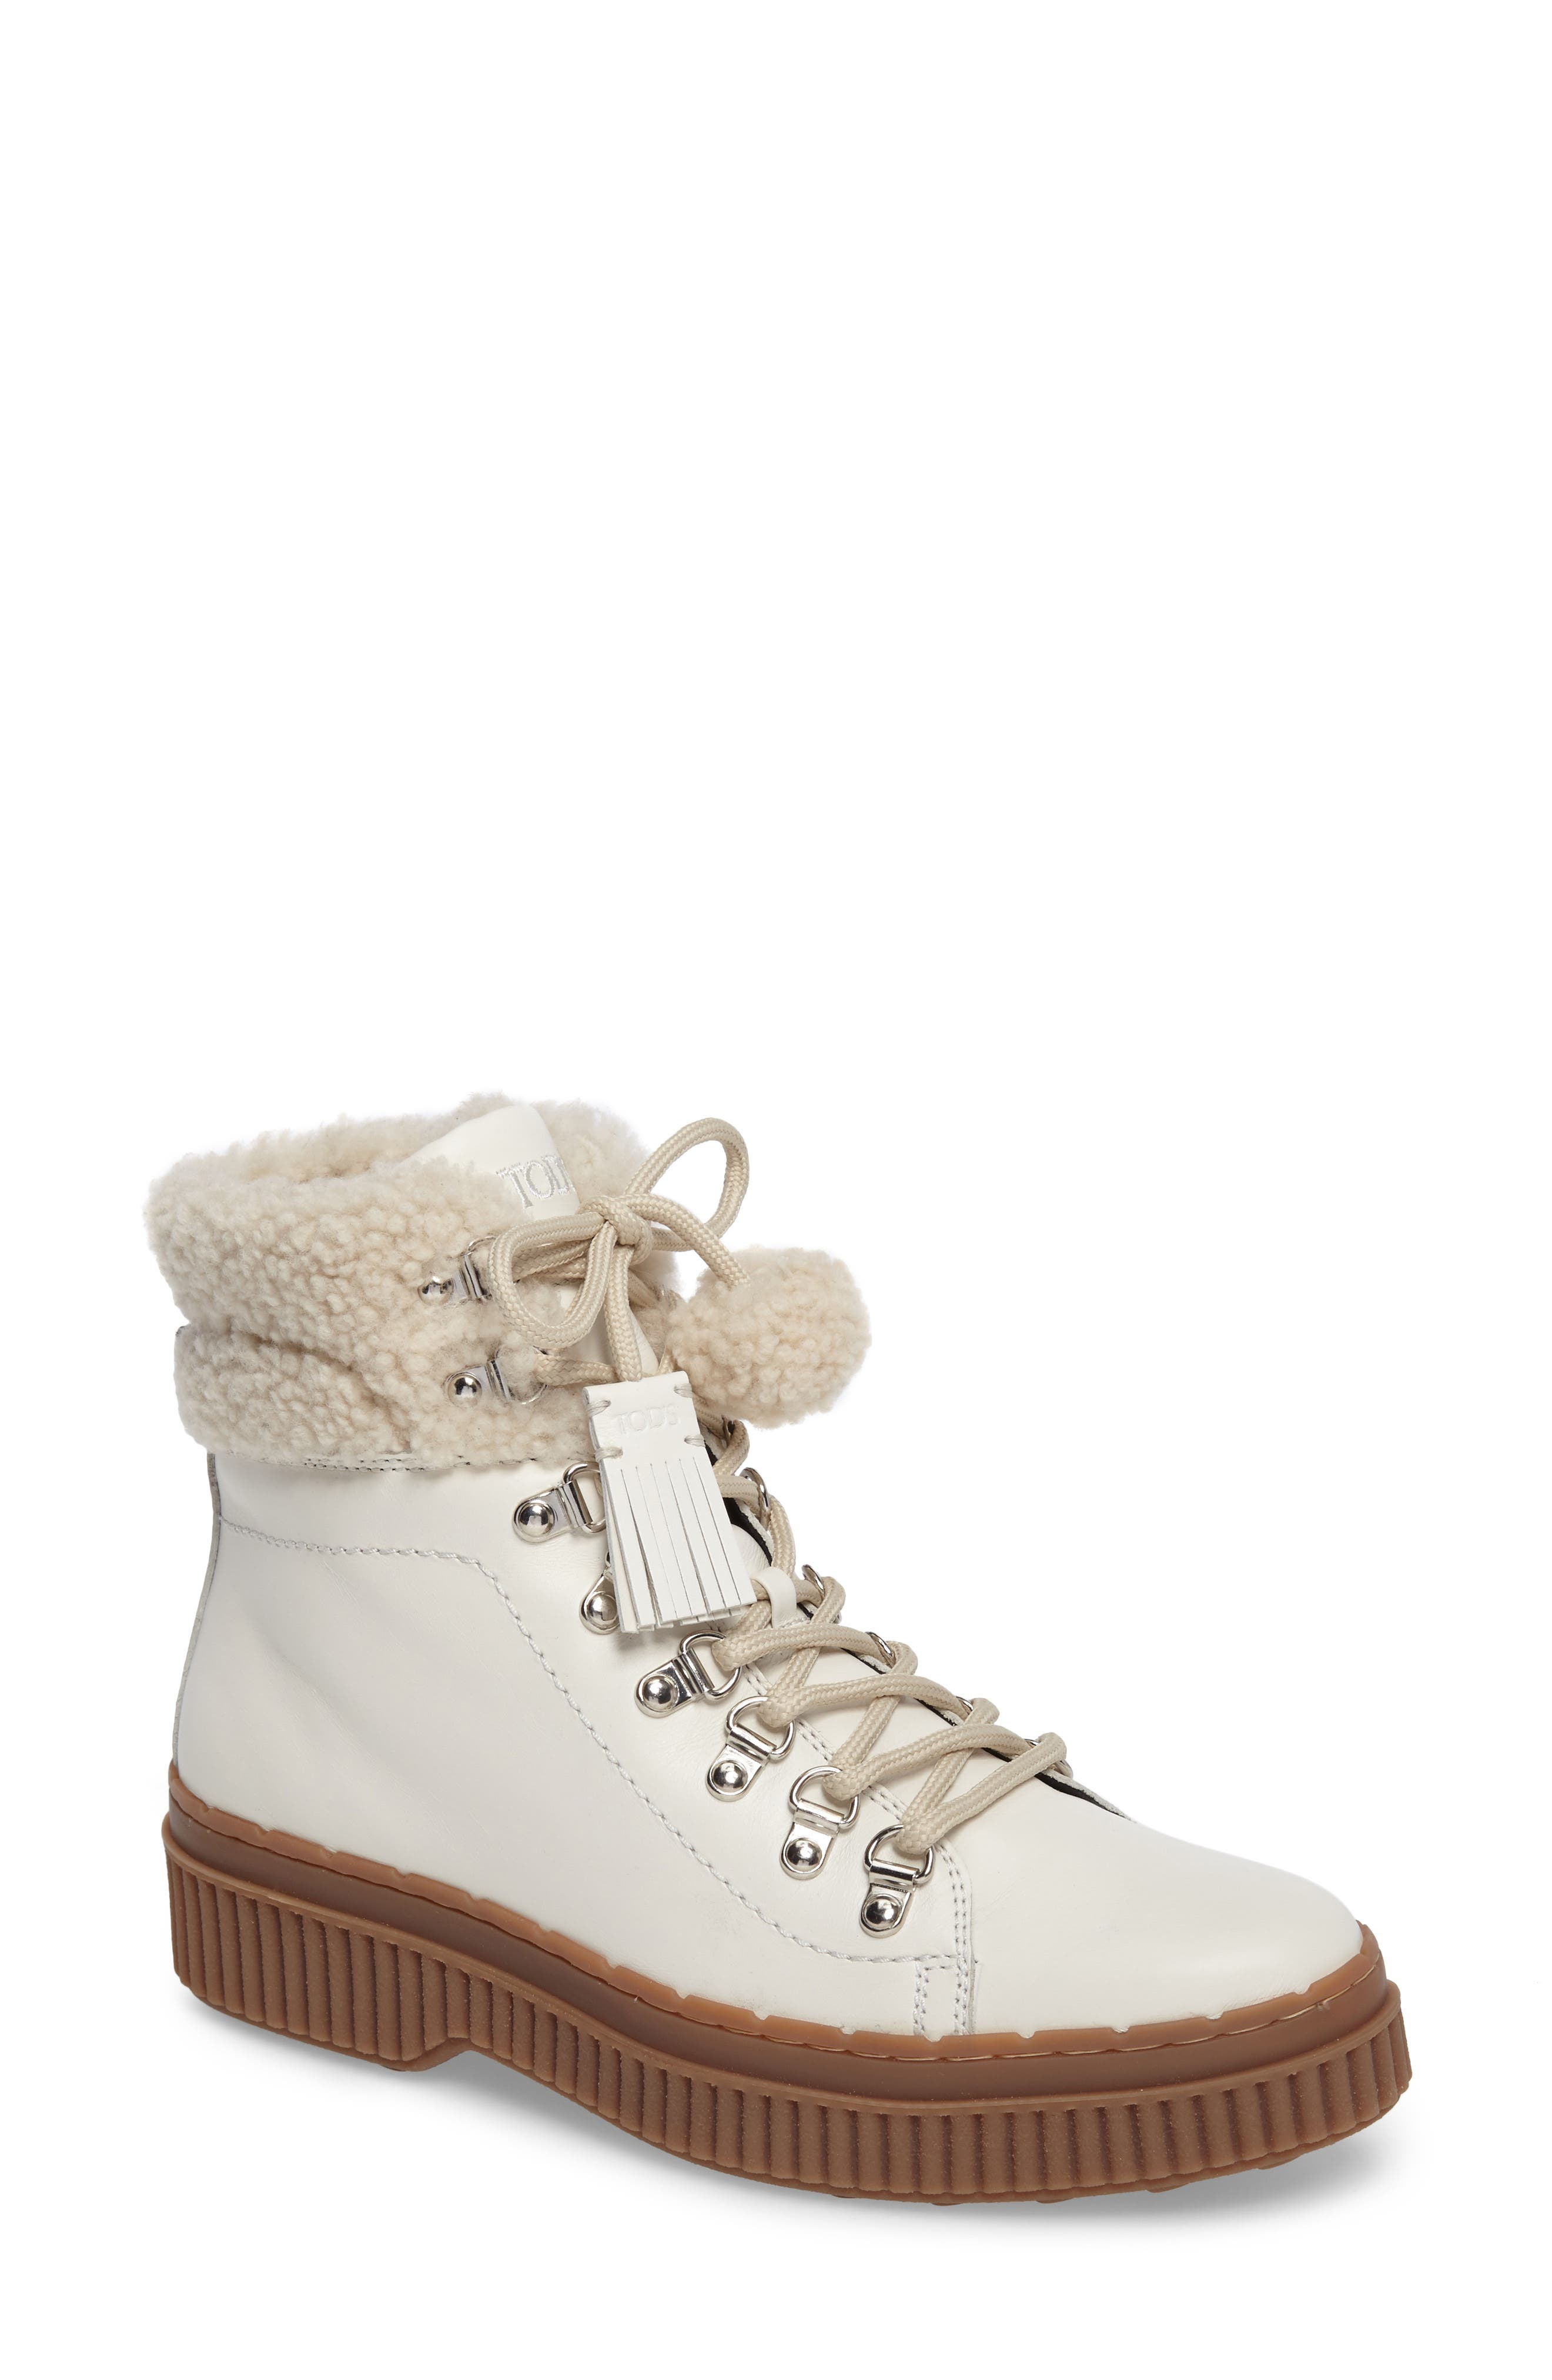 TODS Genuine Shearling Trim Hiker Boot